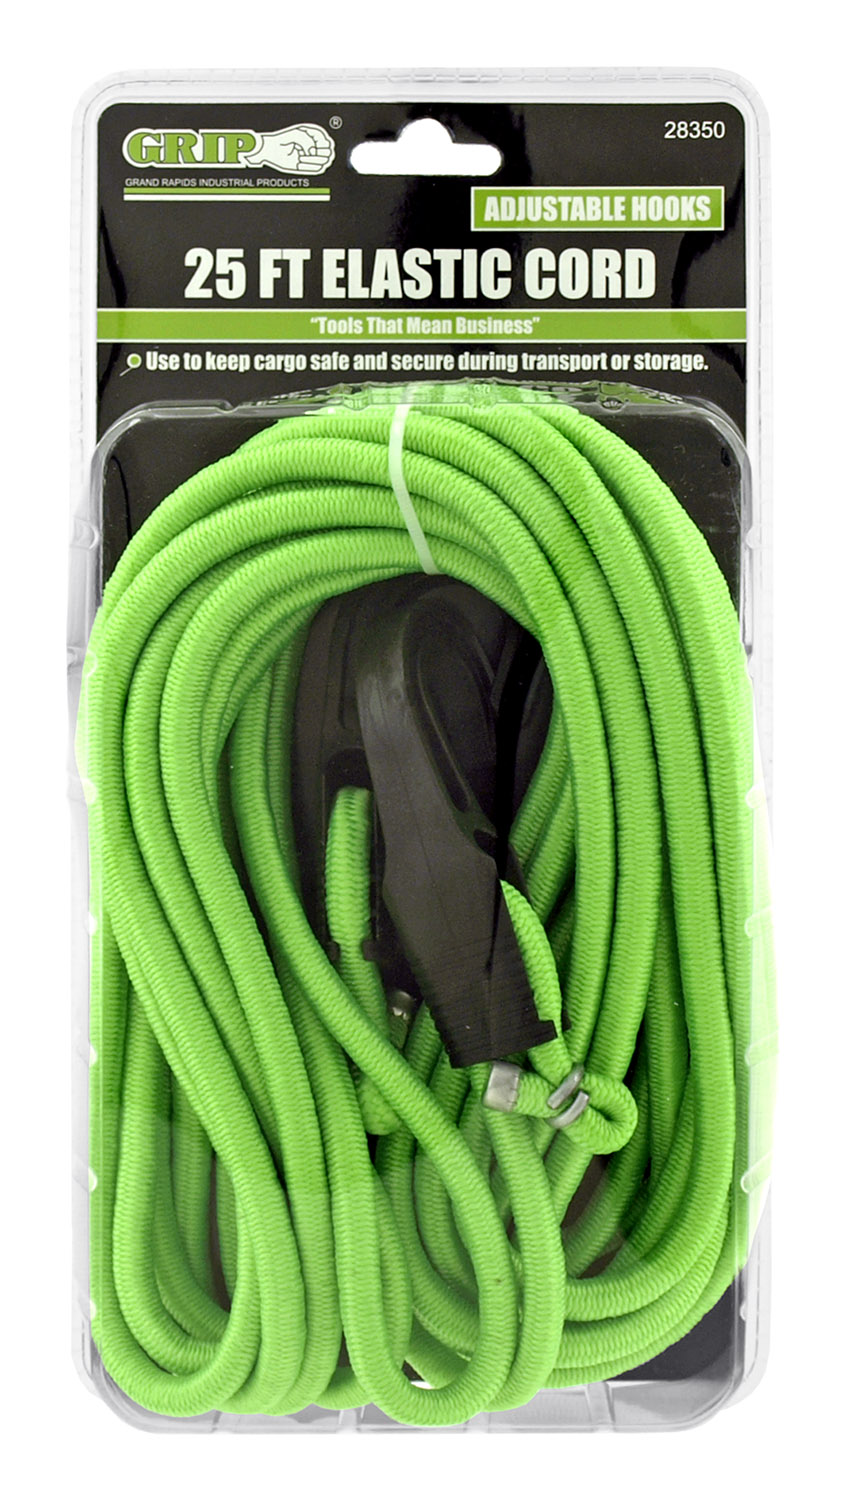 25' Elastic Bungee Cord with Adjustable Hooks - Comes in Assorted Colors